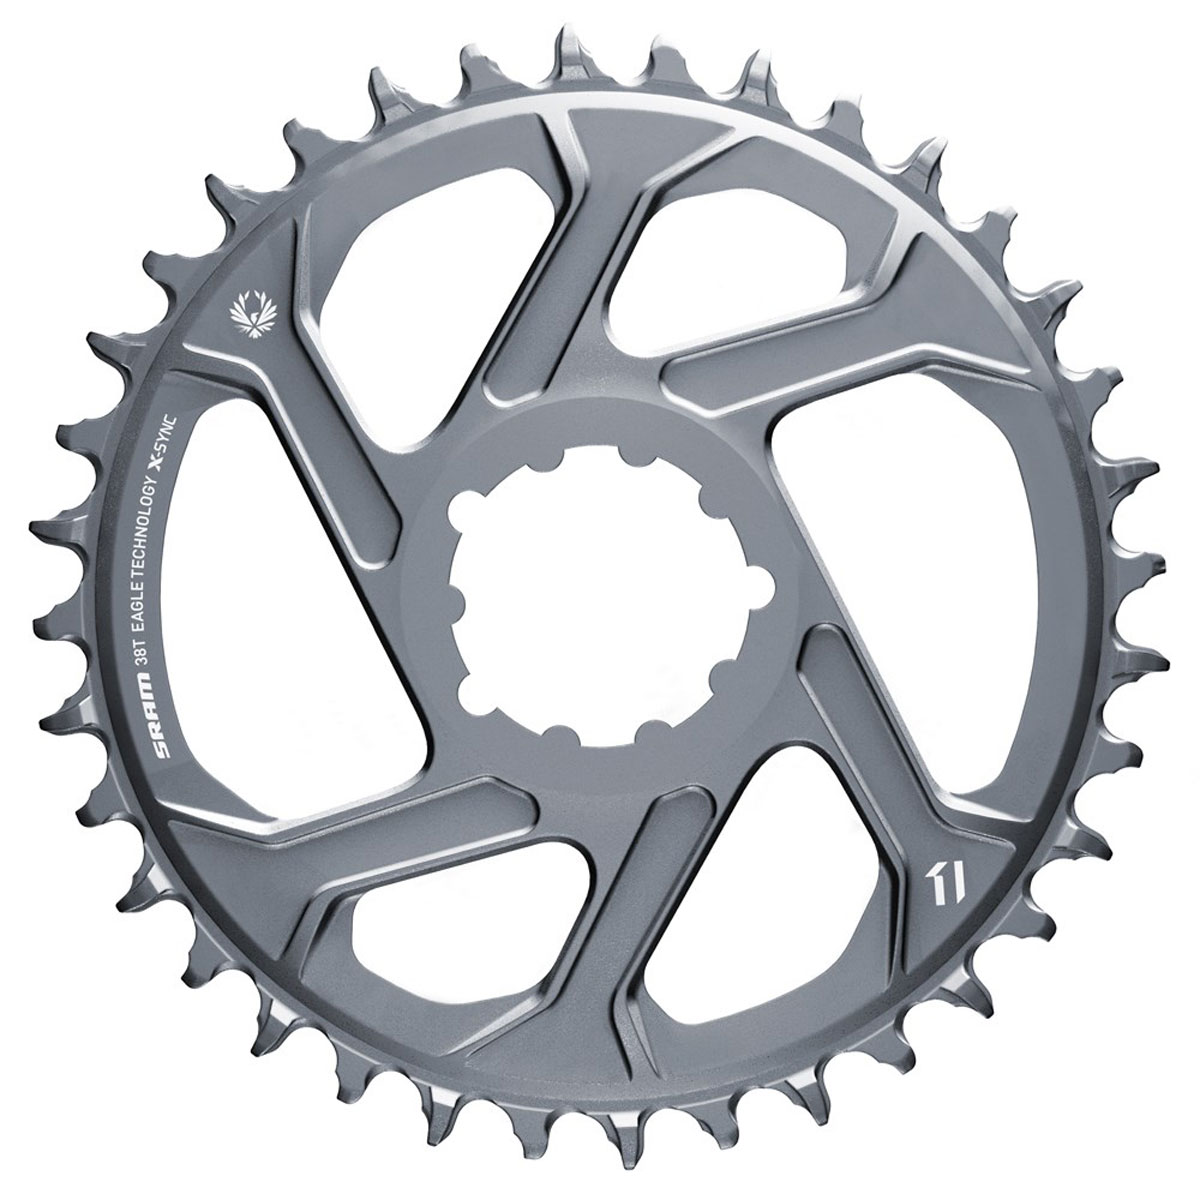 X-SYNC 2 Eagle™ Chainring Direct Mount